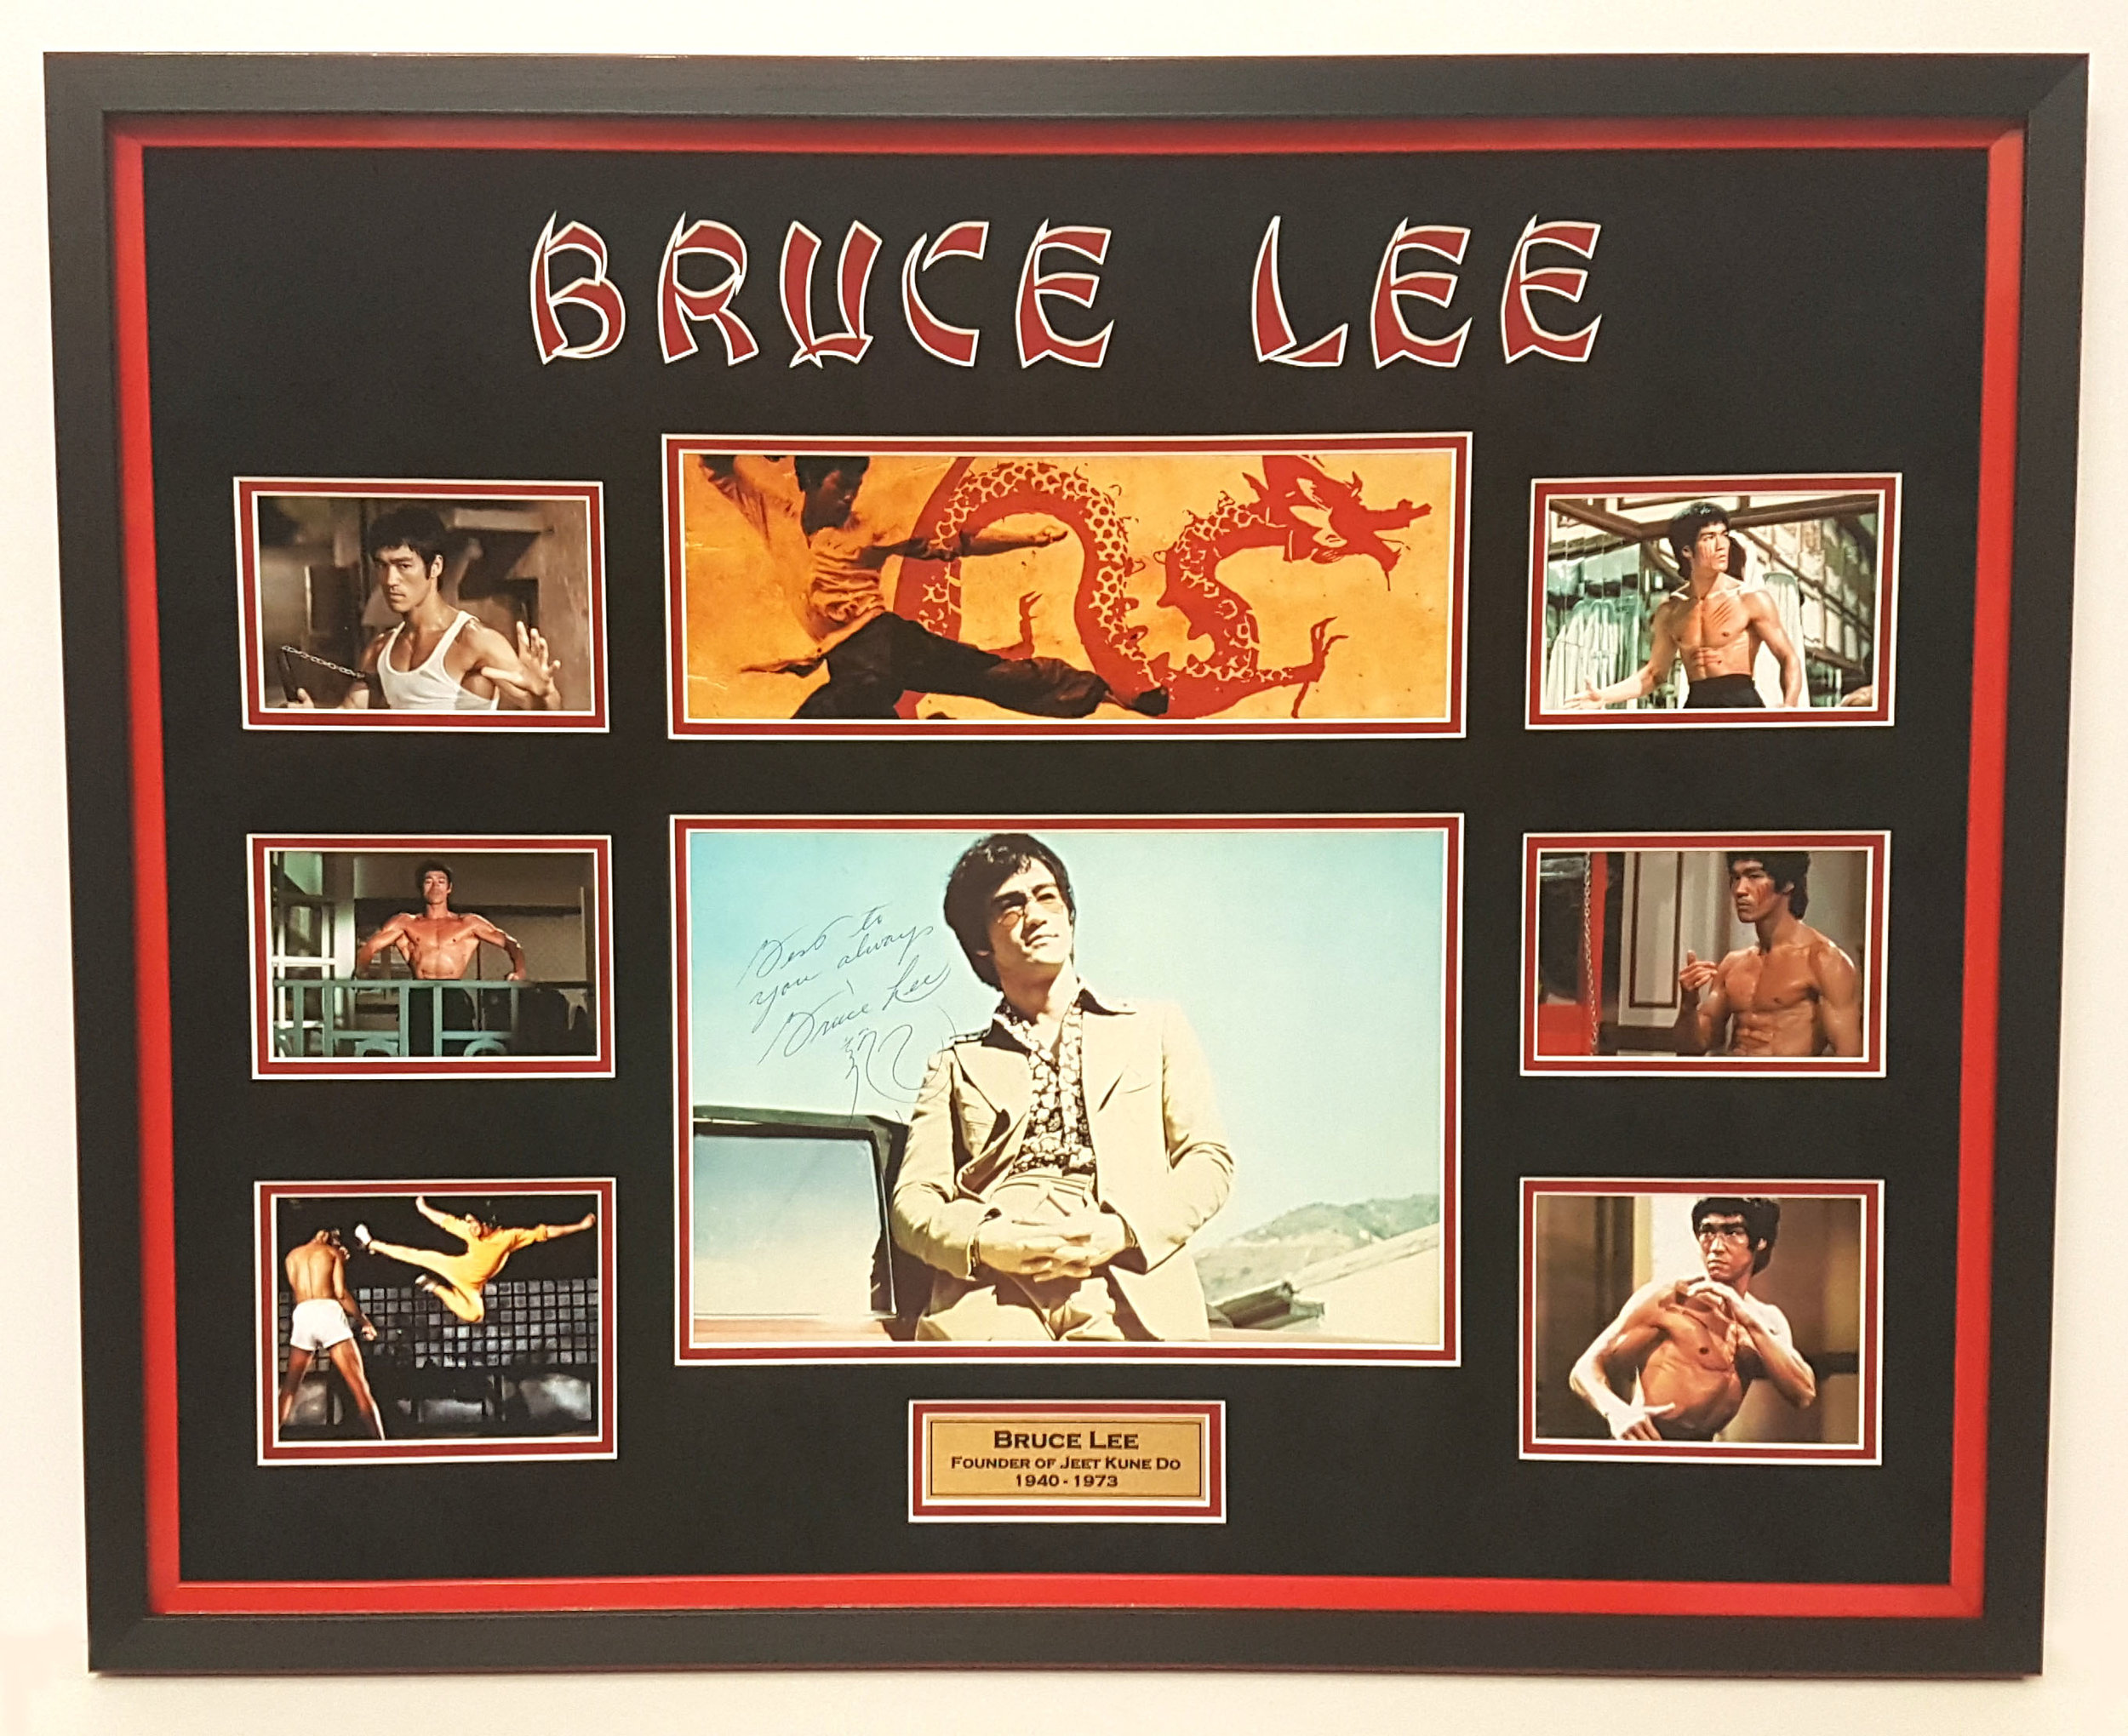 A Bruce Lee signed poster and a collection of photos framed in suedette mount borders with carved out title lettering done on our Gunnar CMC machine. This is a good example of top level conservation framing as the item was of very high value. The client left it to me to choose the frame and layout. Love it !